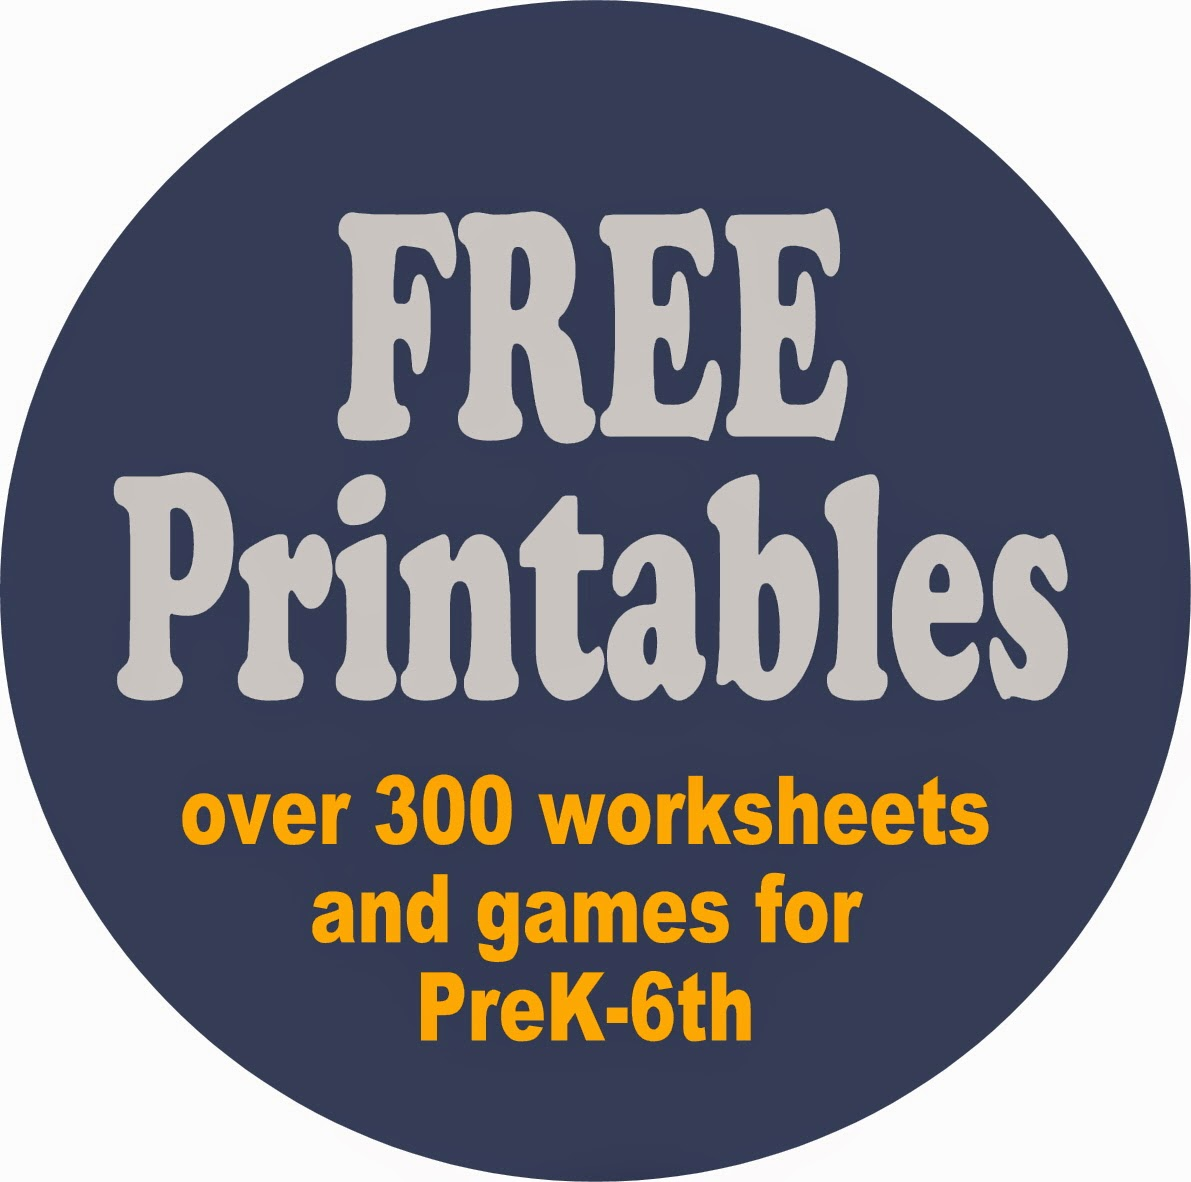 Printables Free Preschool Worksheets Age 3 123 homeschool 4 me worksheets for kids over 300 games lapbooks and units kids